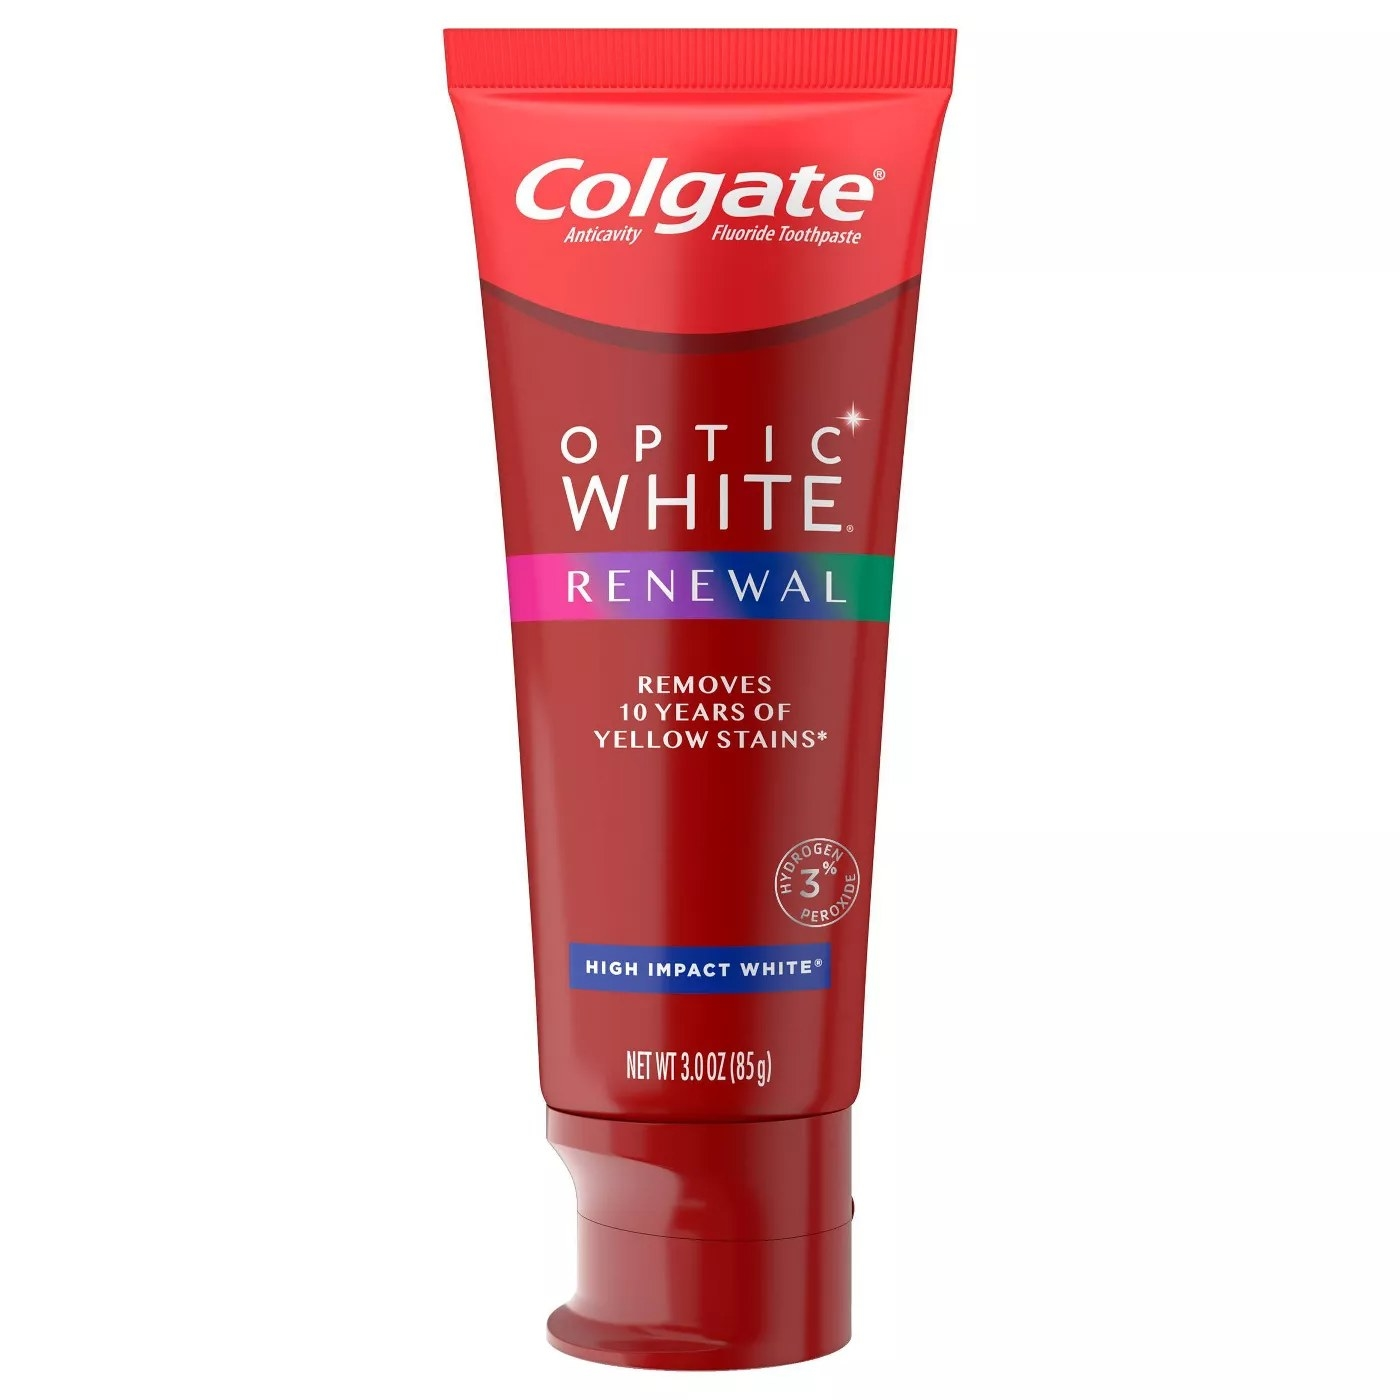 Colgate Optic White Renewal removes 10 years of yellow stains